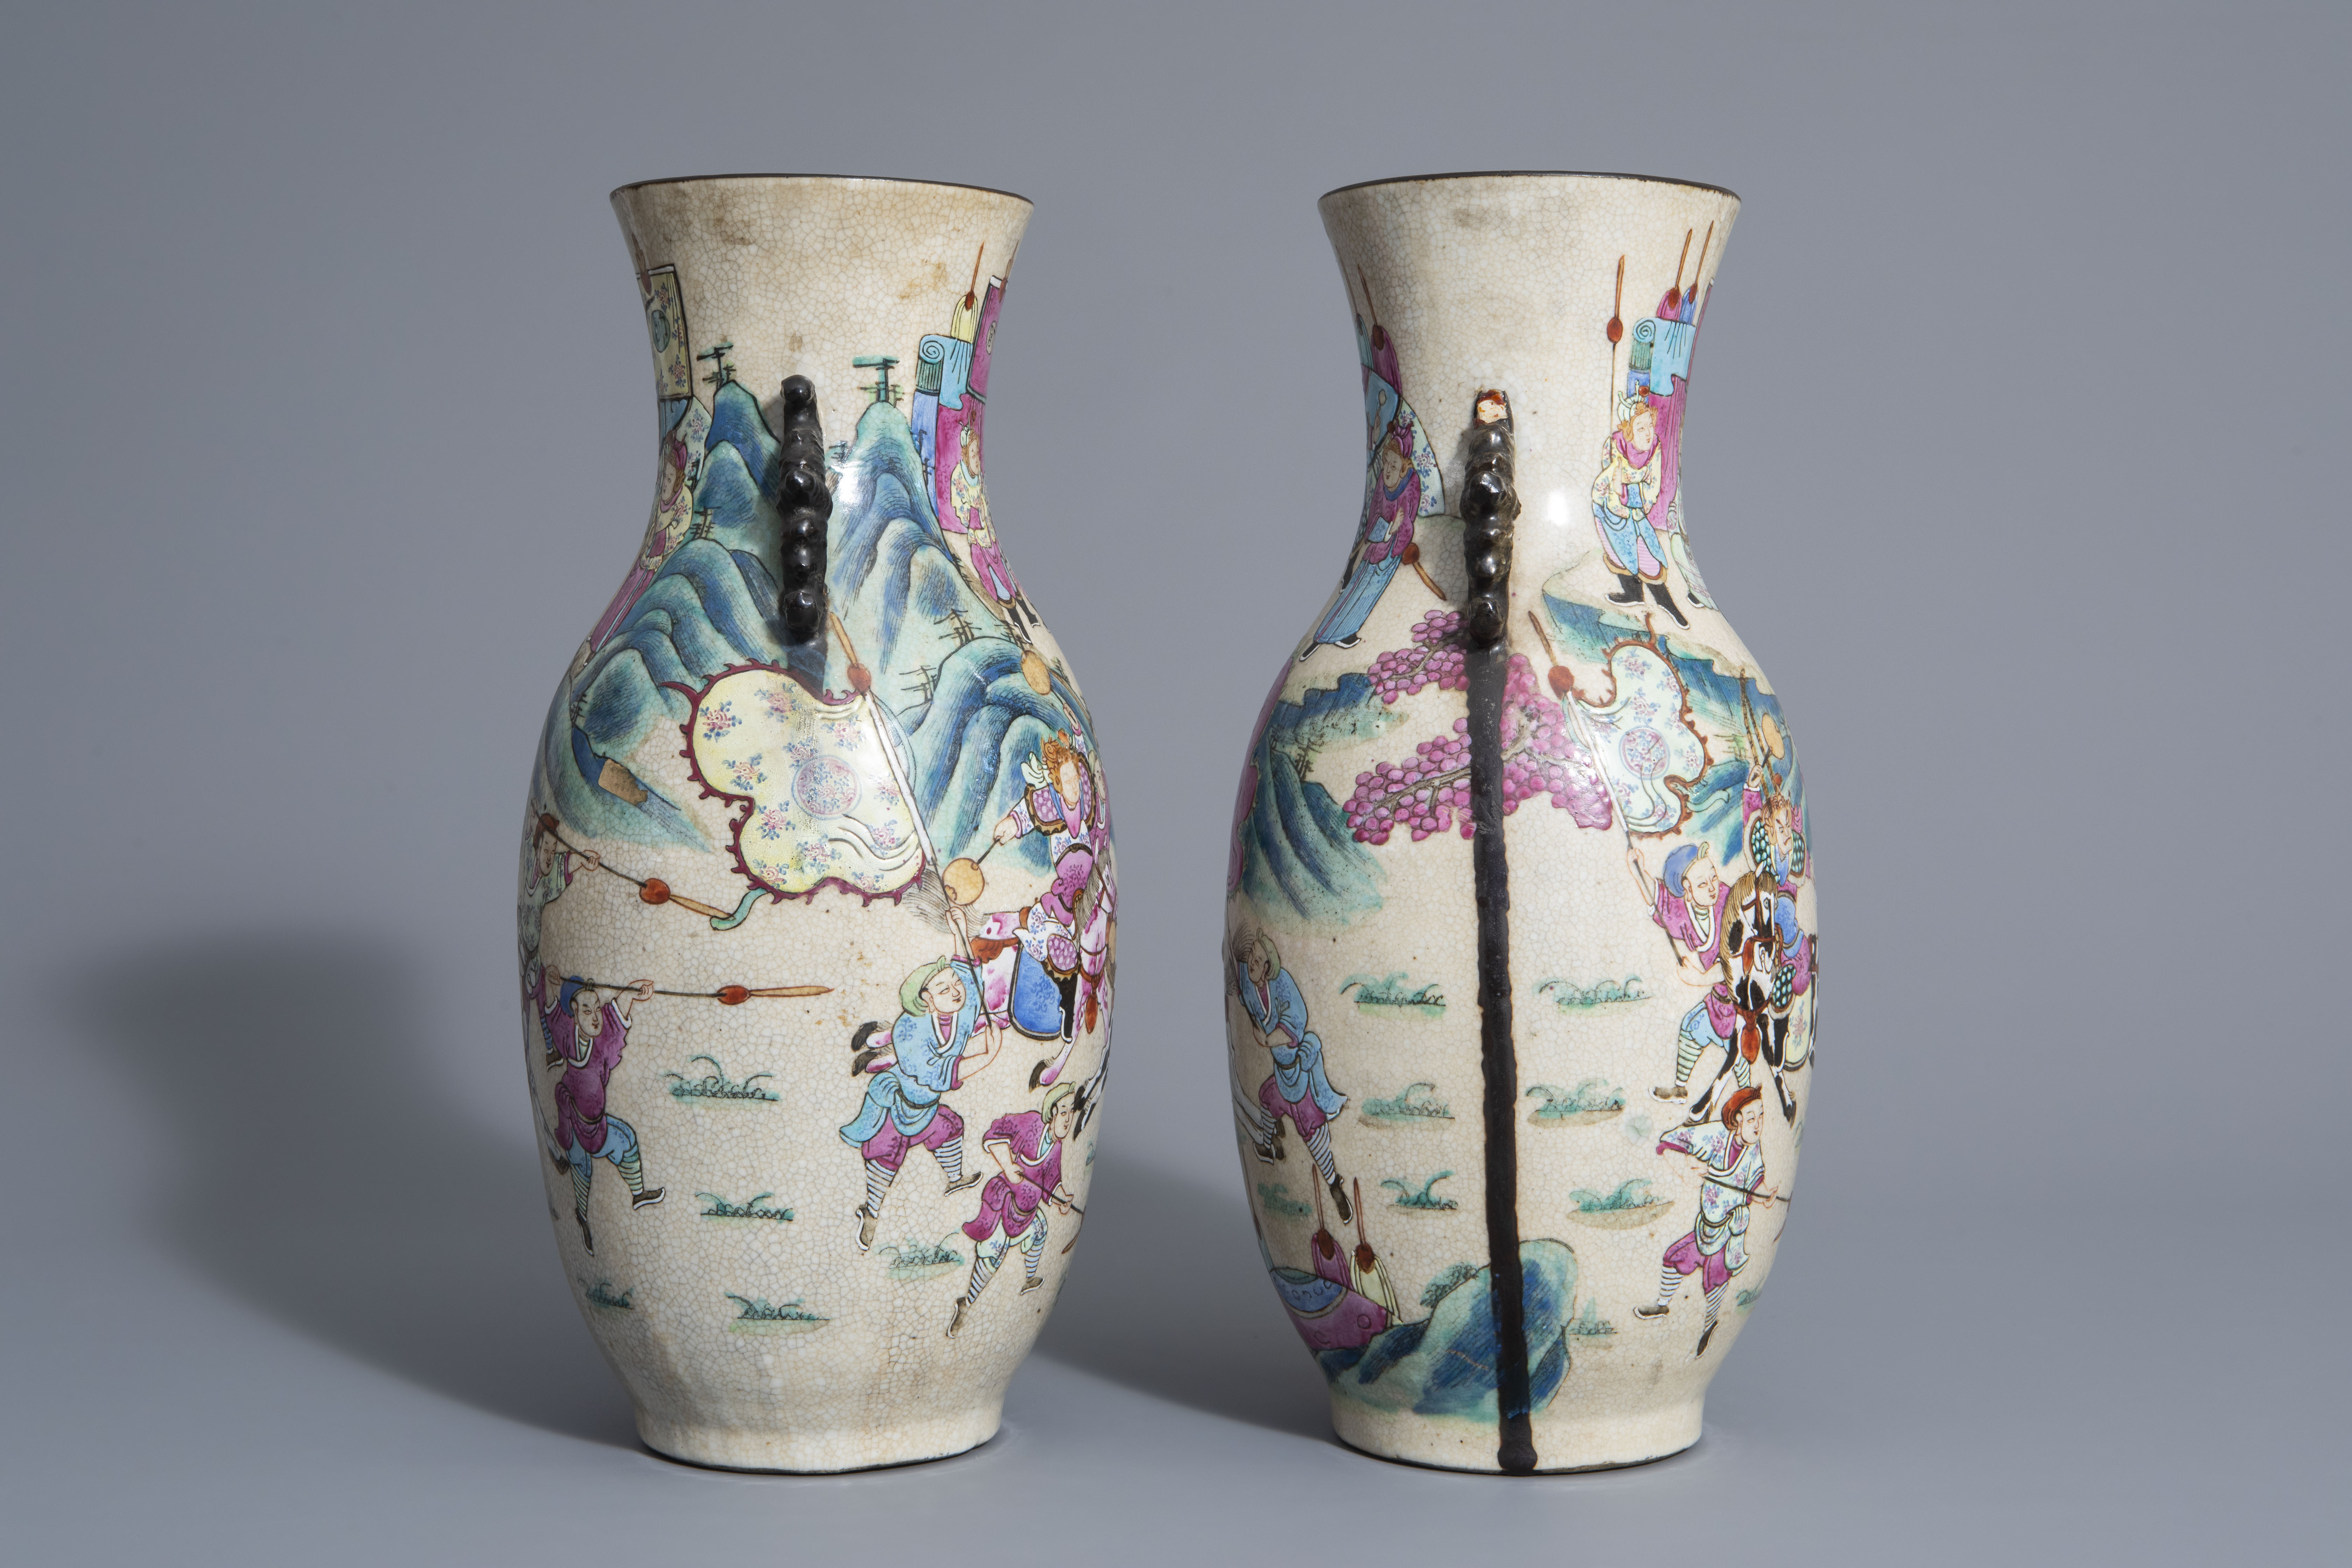 A pair of Chinese Nanking crackle glazed famille rose vases w. warrior scenes on stands, 19th C. - Image 3 of 7